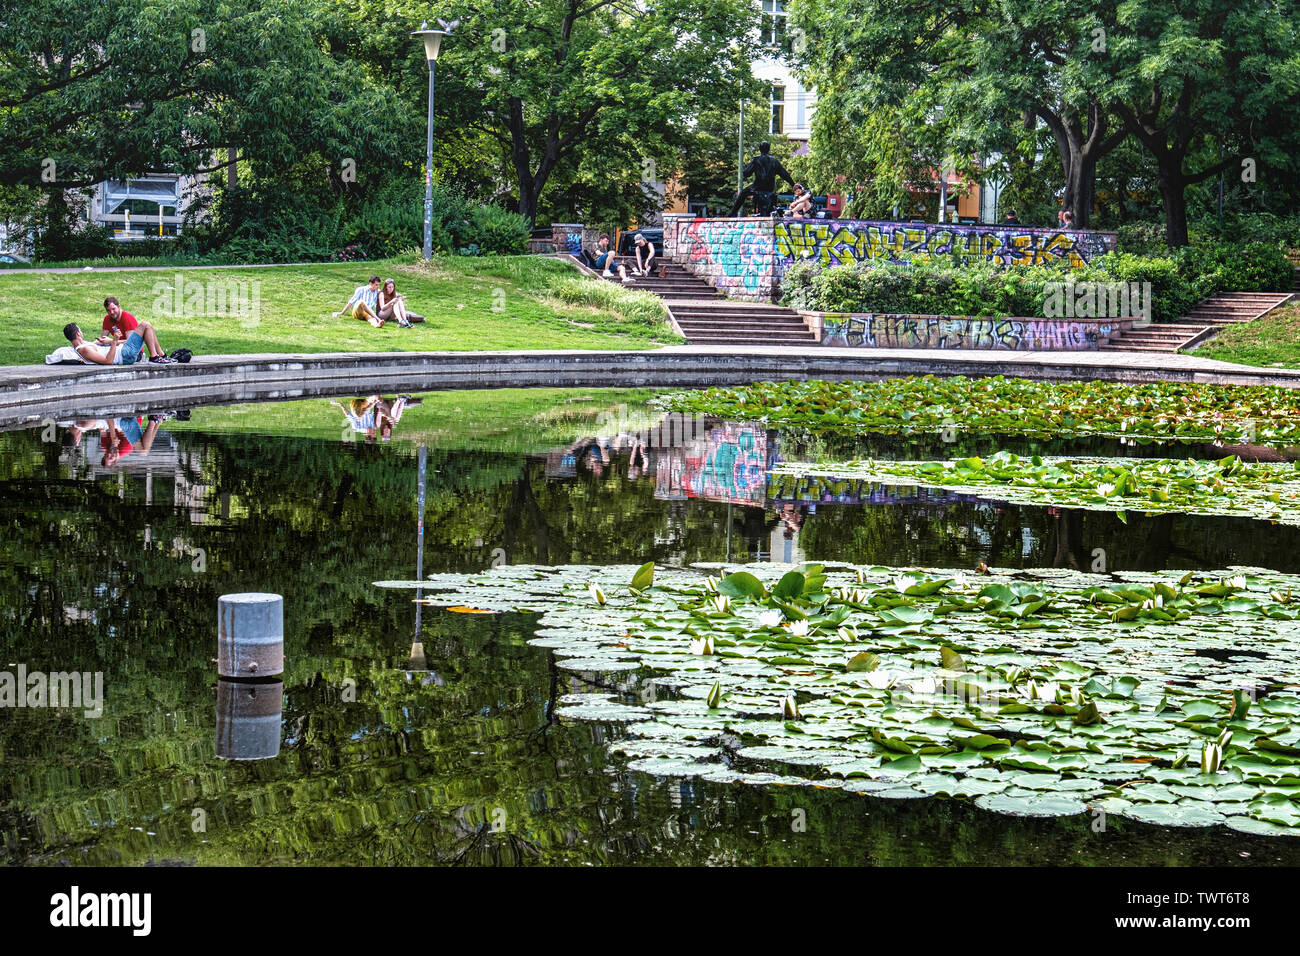 Volkspark am Weinberg Park, Mitte-Berlin. People relaxing next to pond in Summer. Young couple & reflections - Stock Image